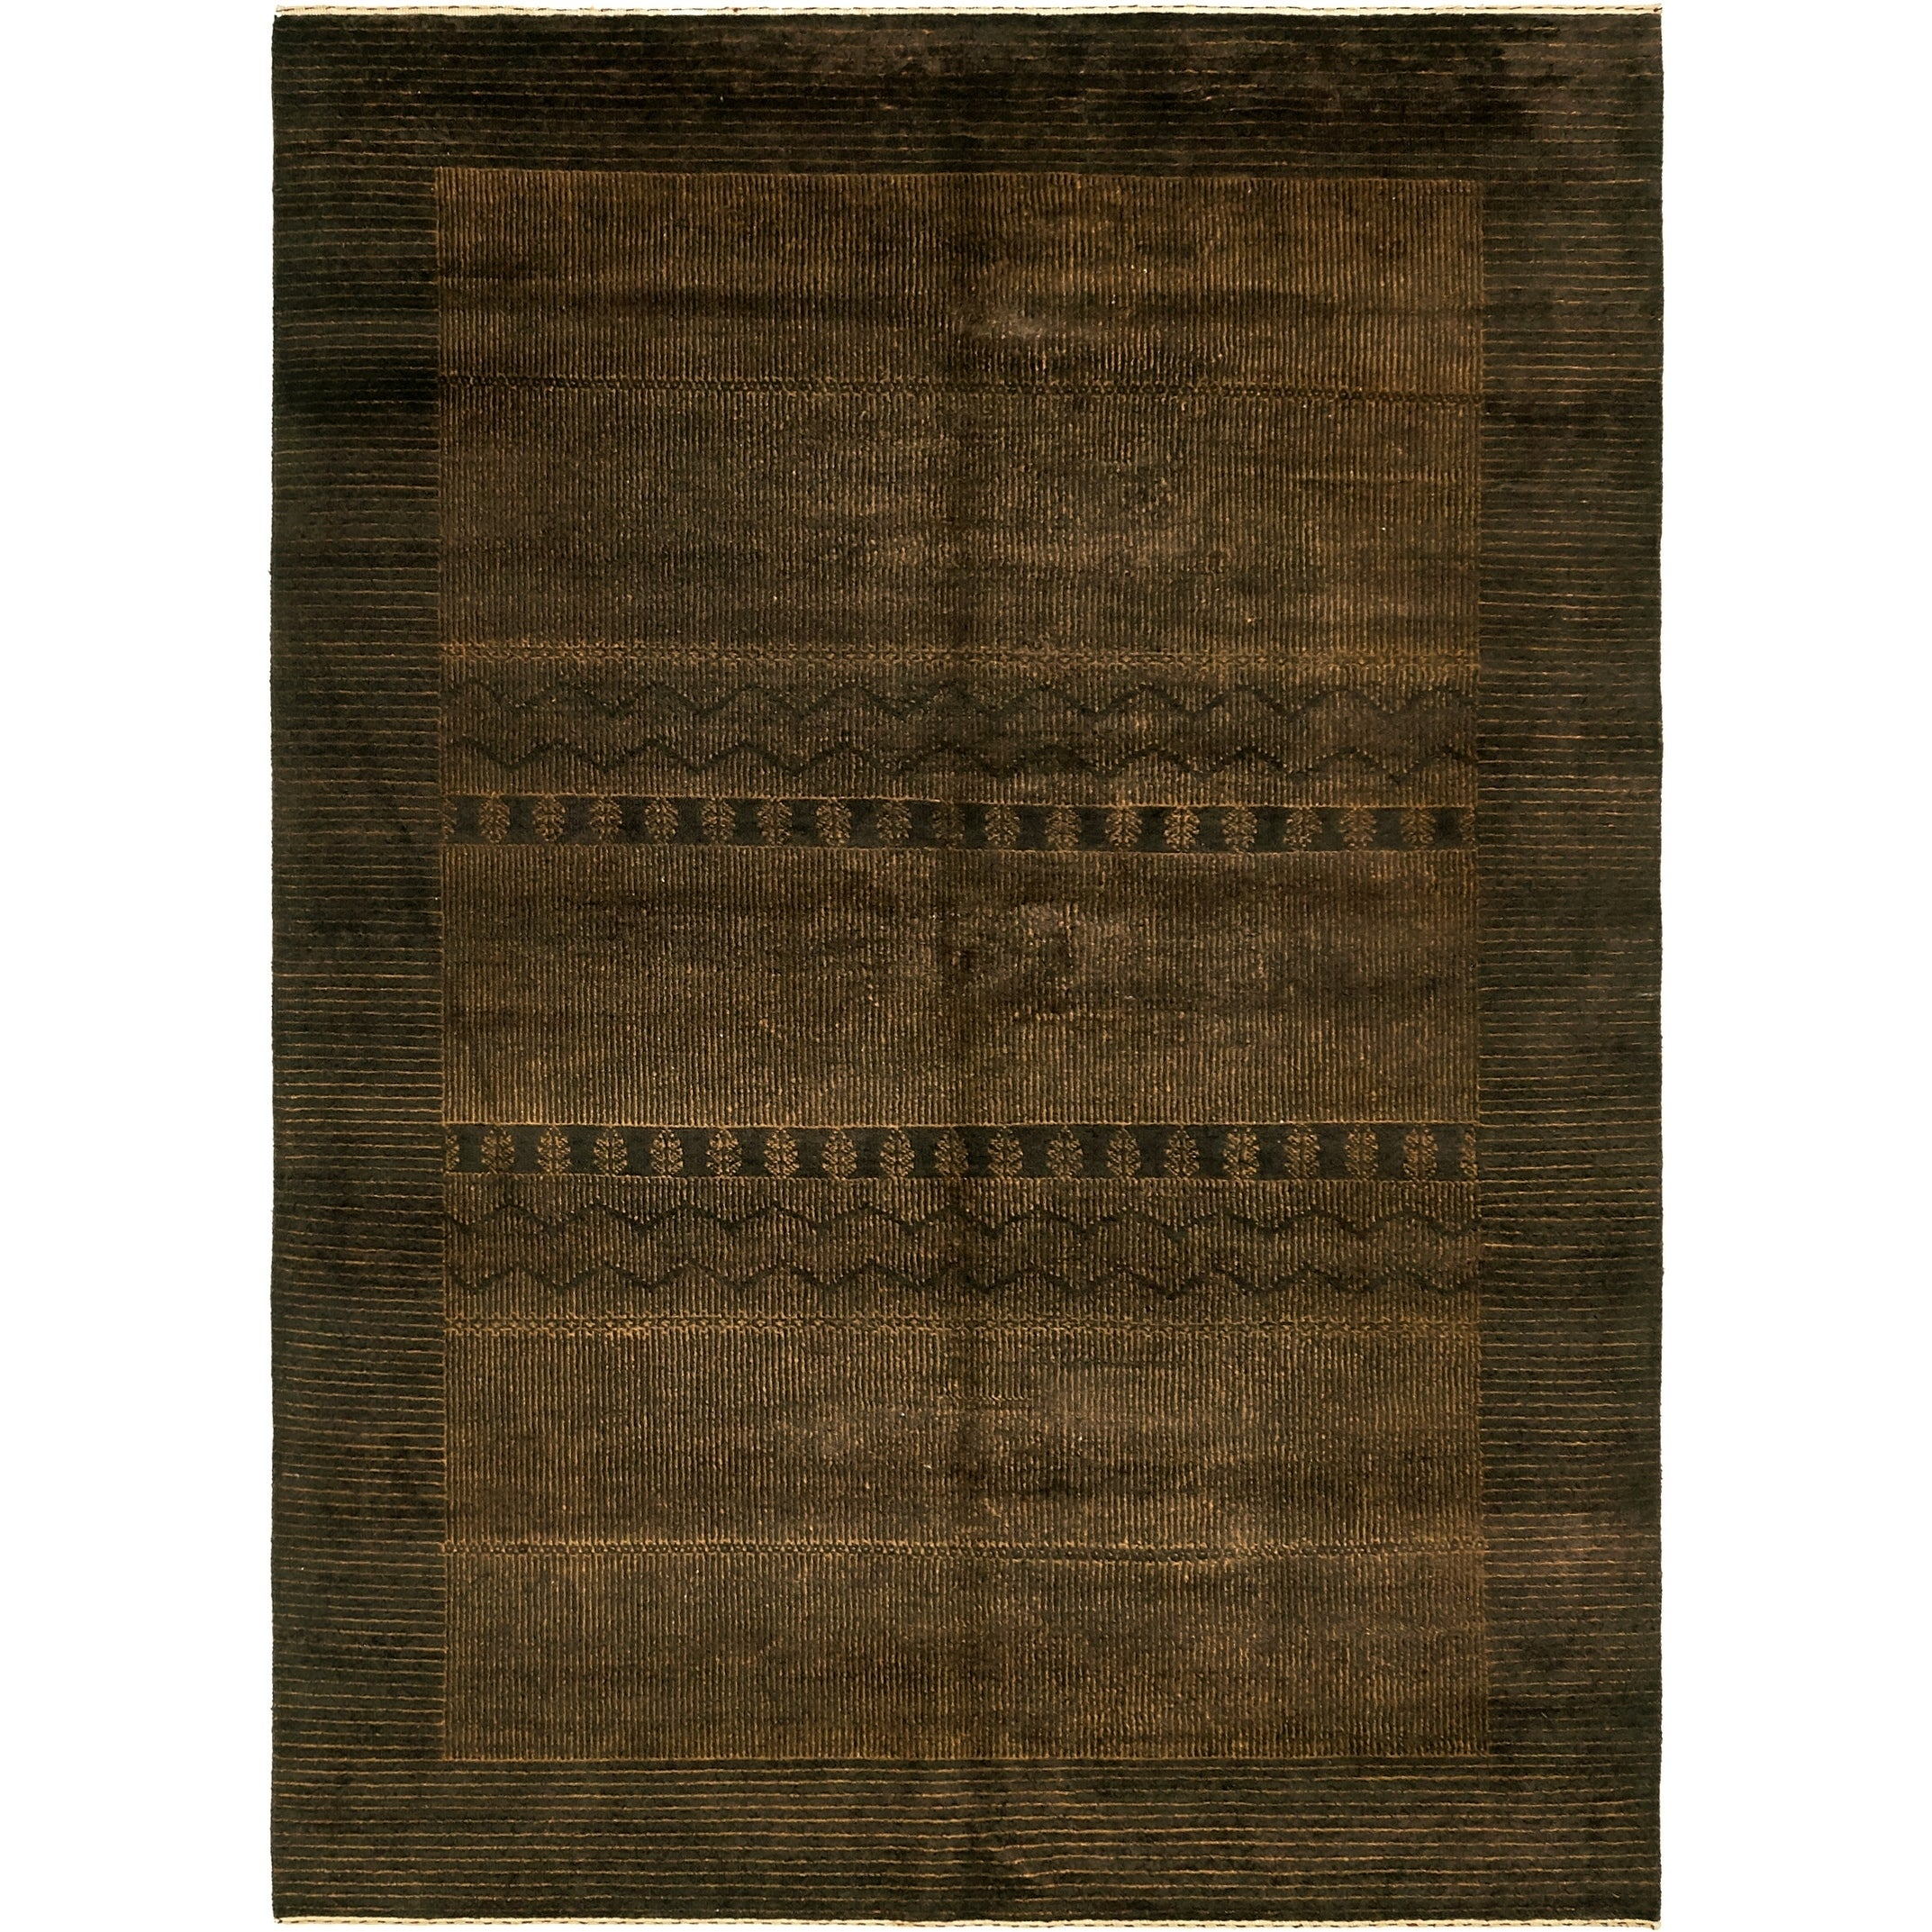 Hand Knotted Kashkuli Gabbeh Silk & Wool Area Rug - 5 10 x 8 2 (Brown - 5 10 x 8 2)